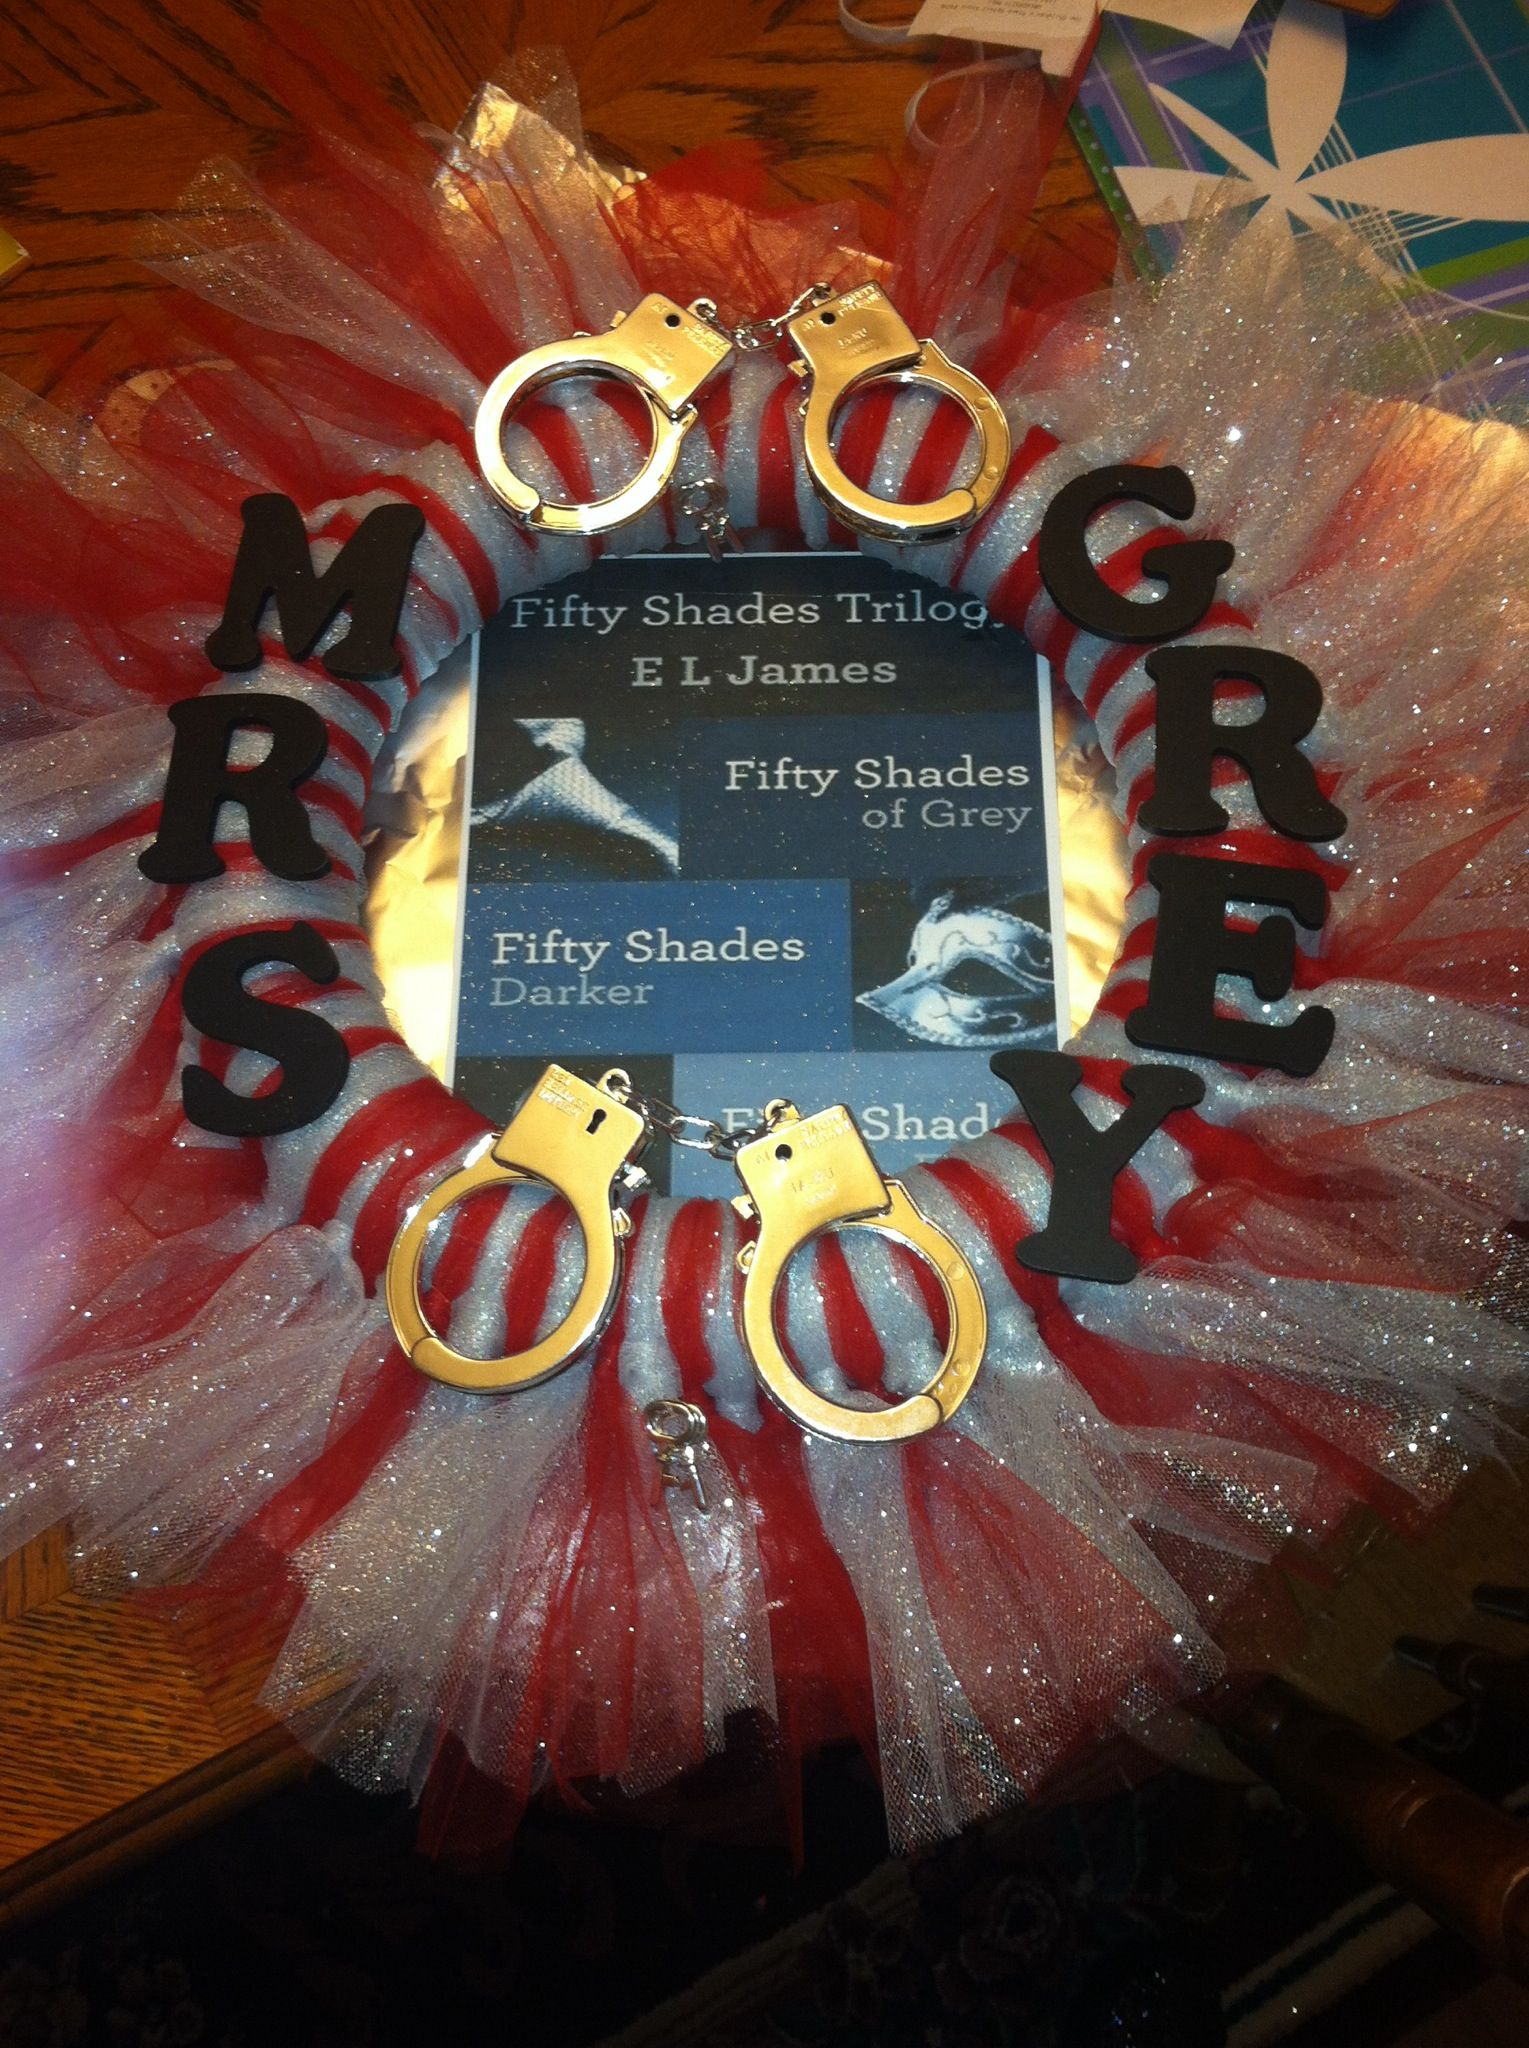 50 shades of grey wreath red for the red room of pain silver for